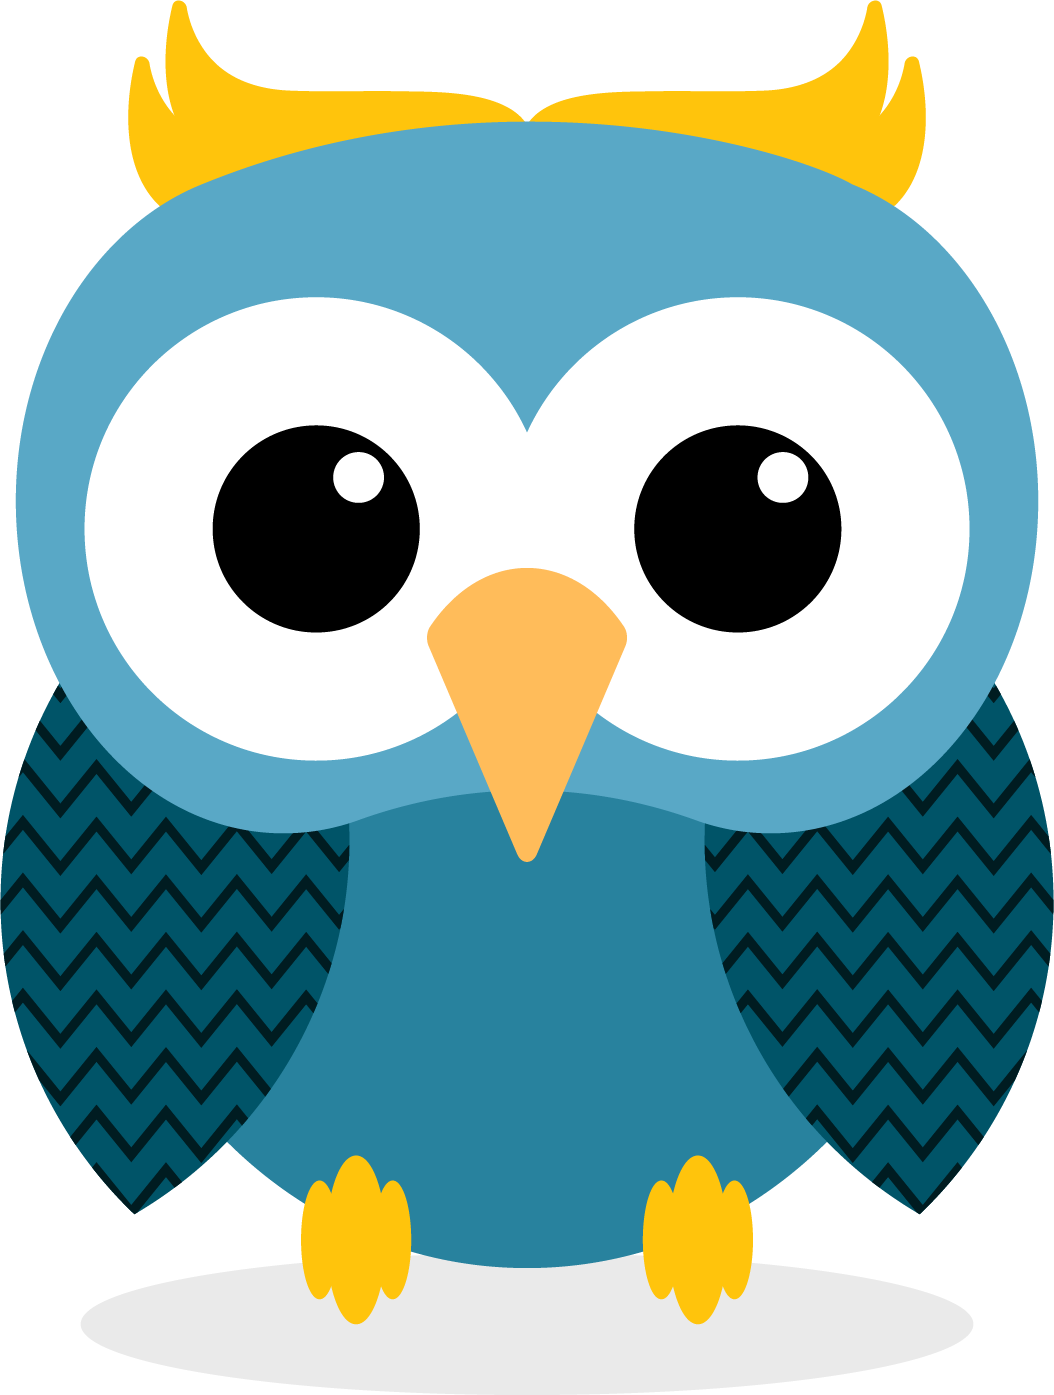 clip royalty free download Png free images only. Owl clipart transparent background.